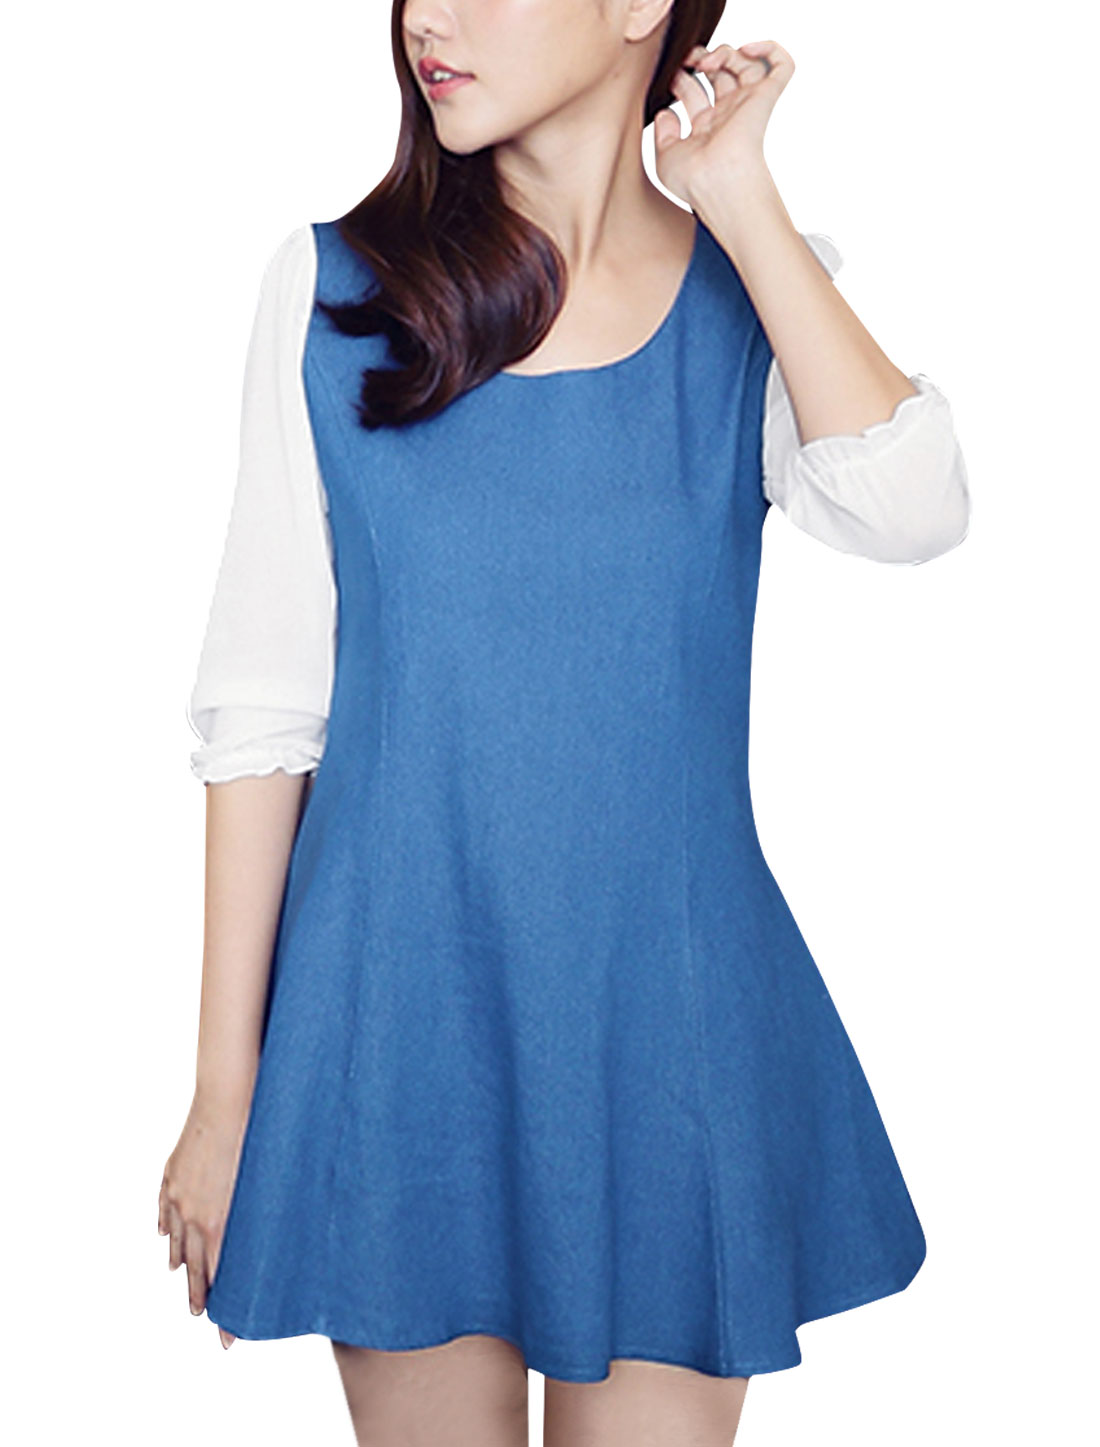 Lady Round Neck Patchwork Concealed Zipper Back Blue White Dress XS